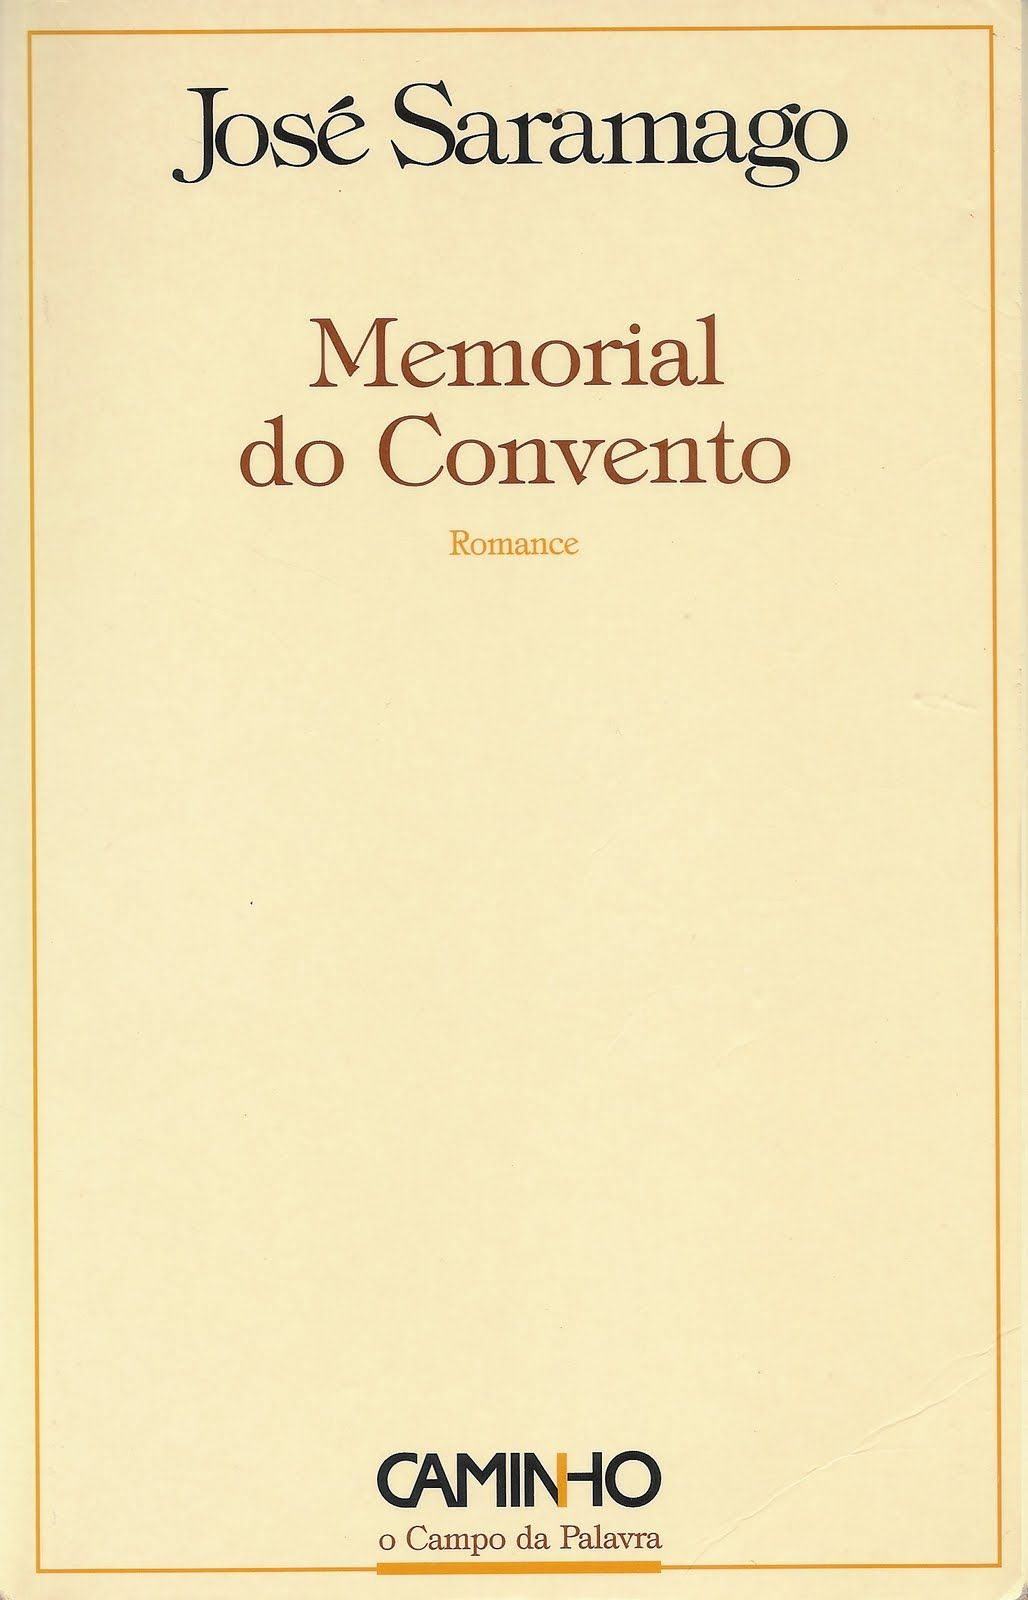 livro memorial do convento de jose saramago